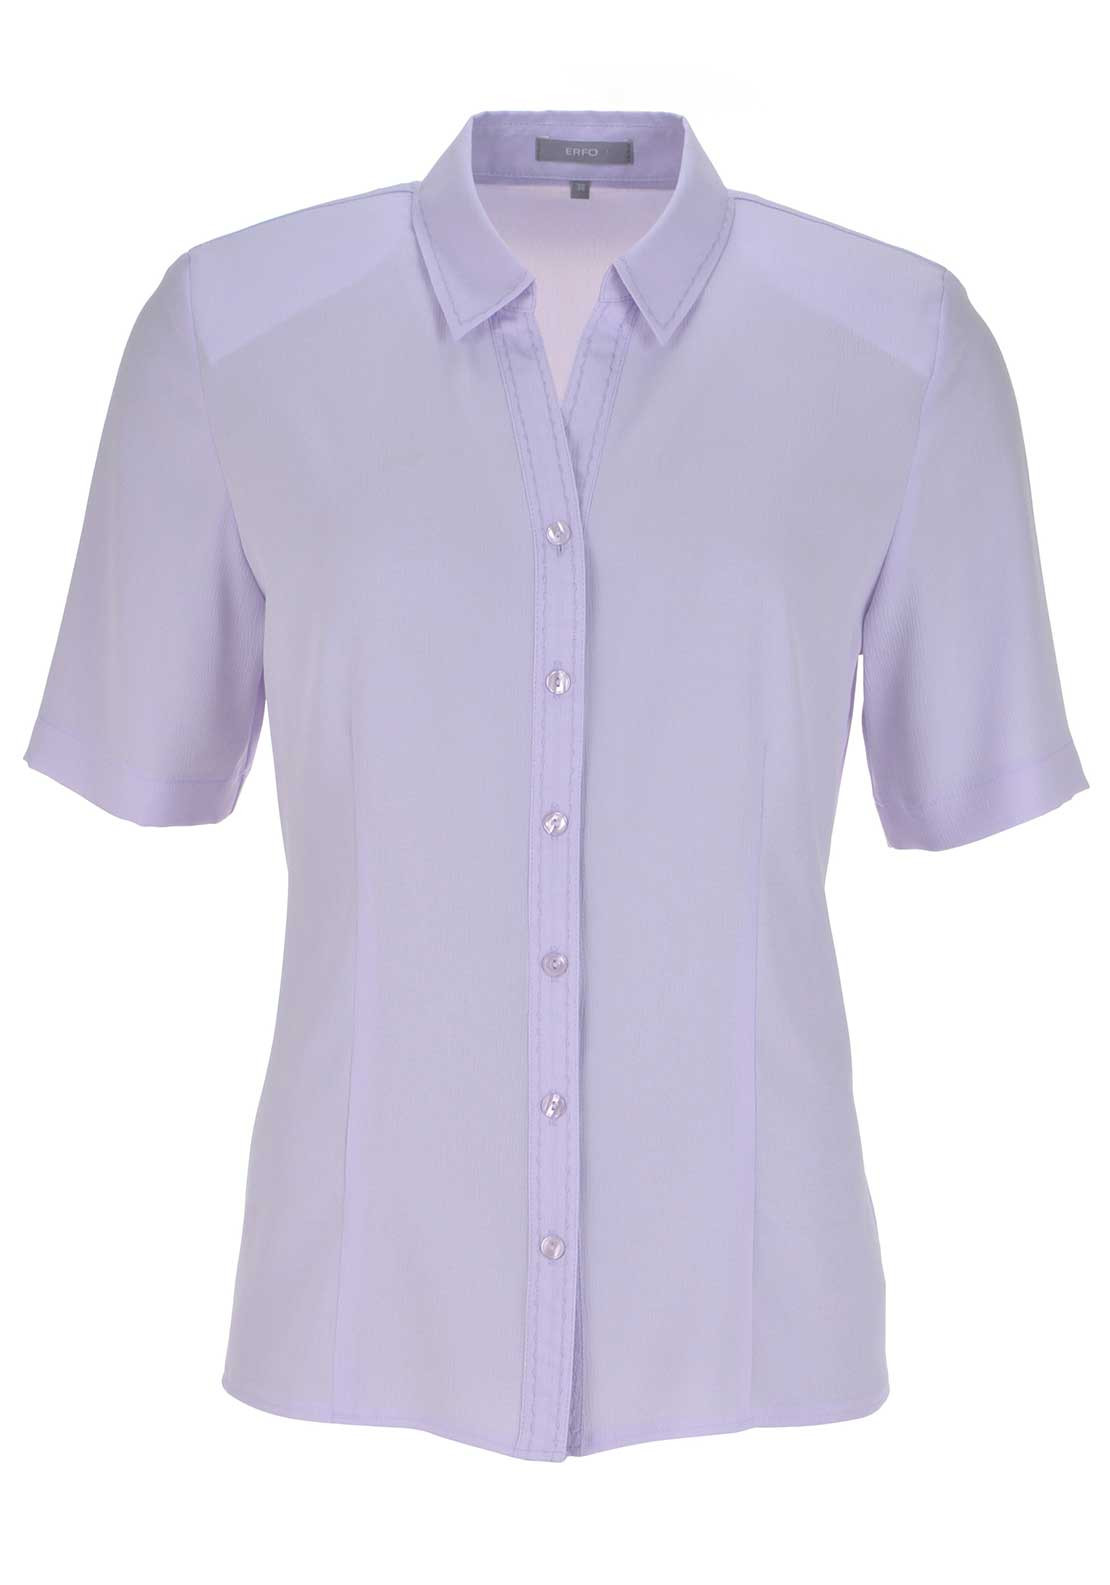 ERFO Textured Short Sleeve V-Neck Blouse, Lilac